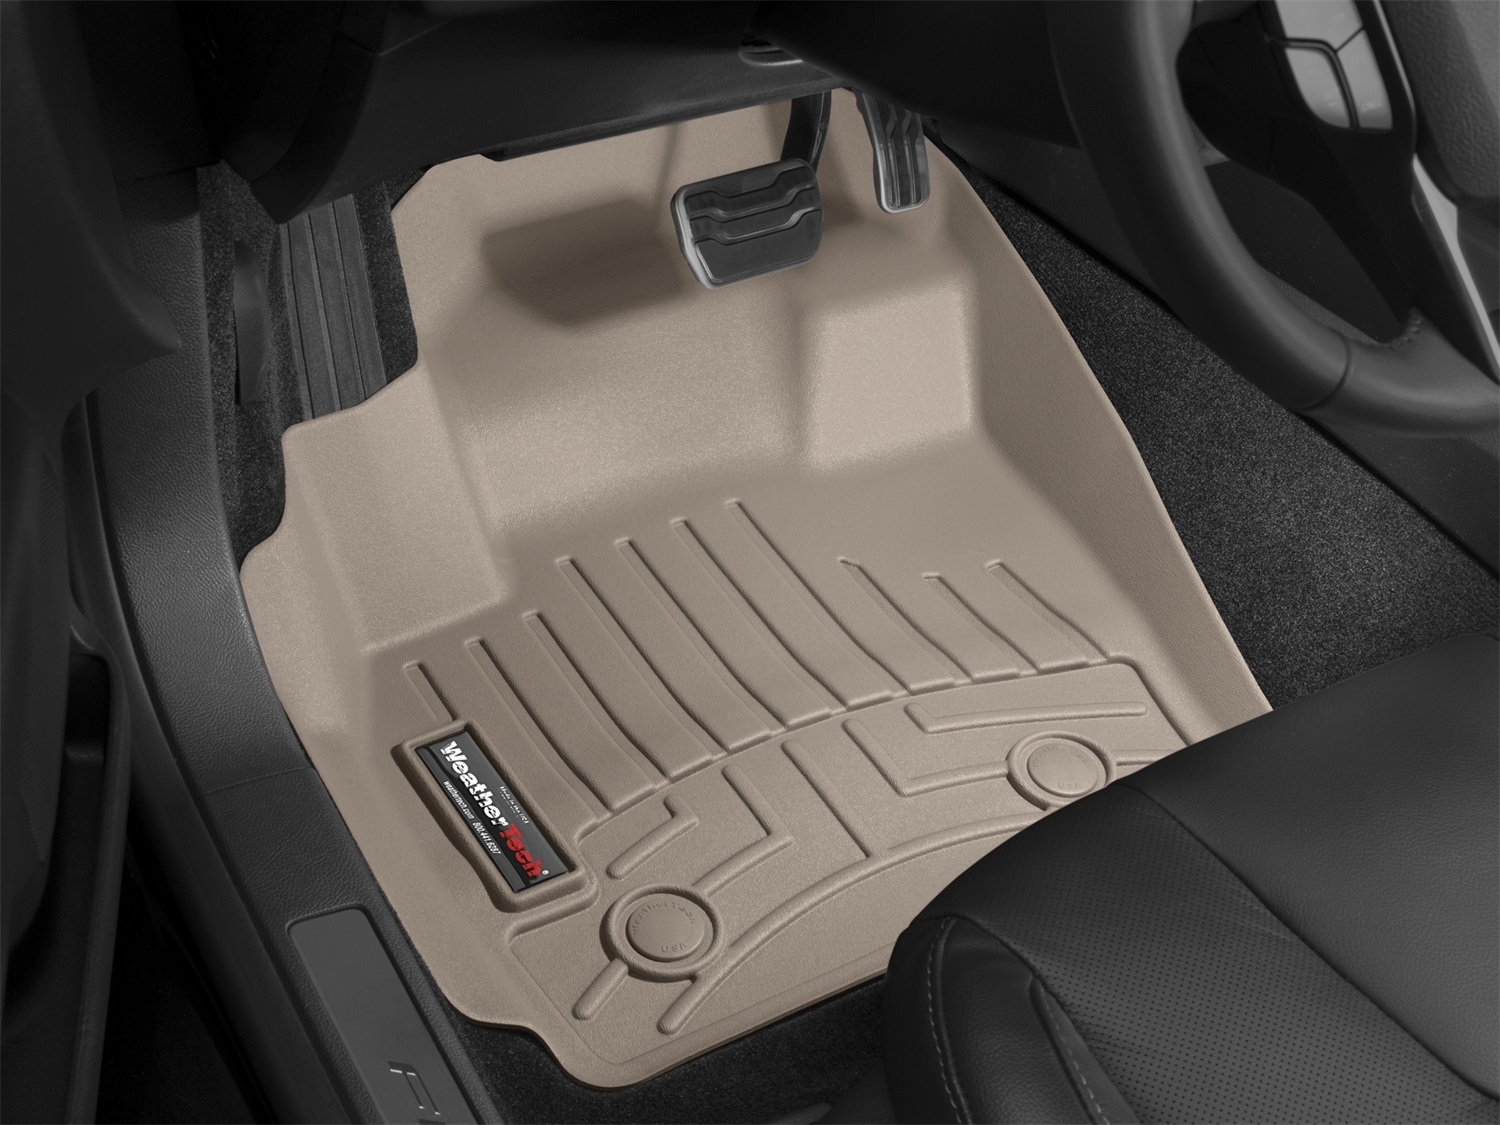 Weathertech Floor Mats Digitalfit Free Amp Fast Shipping